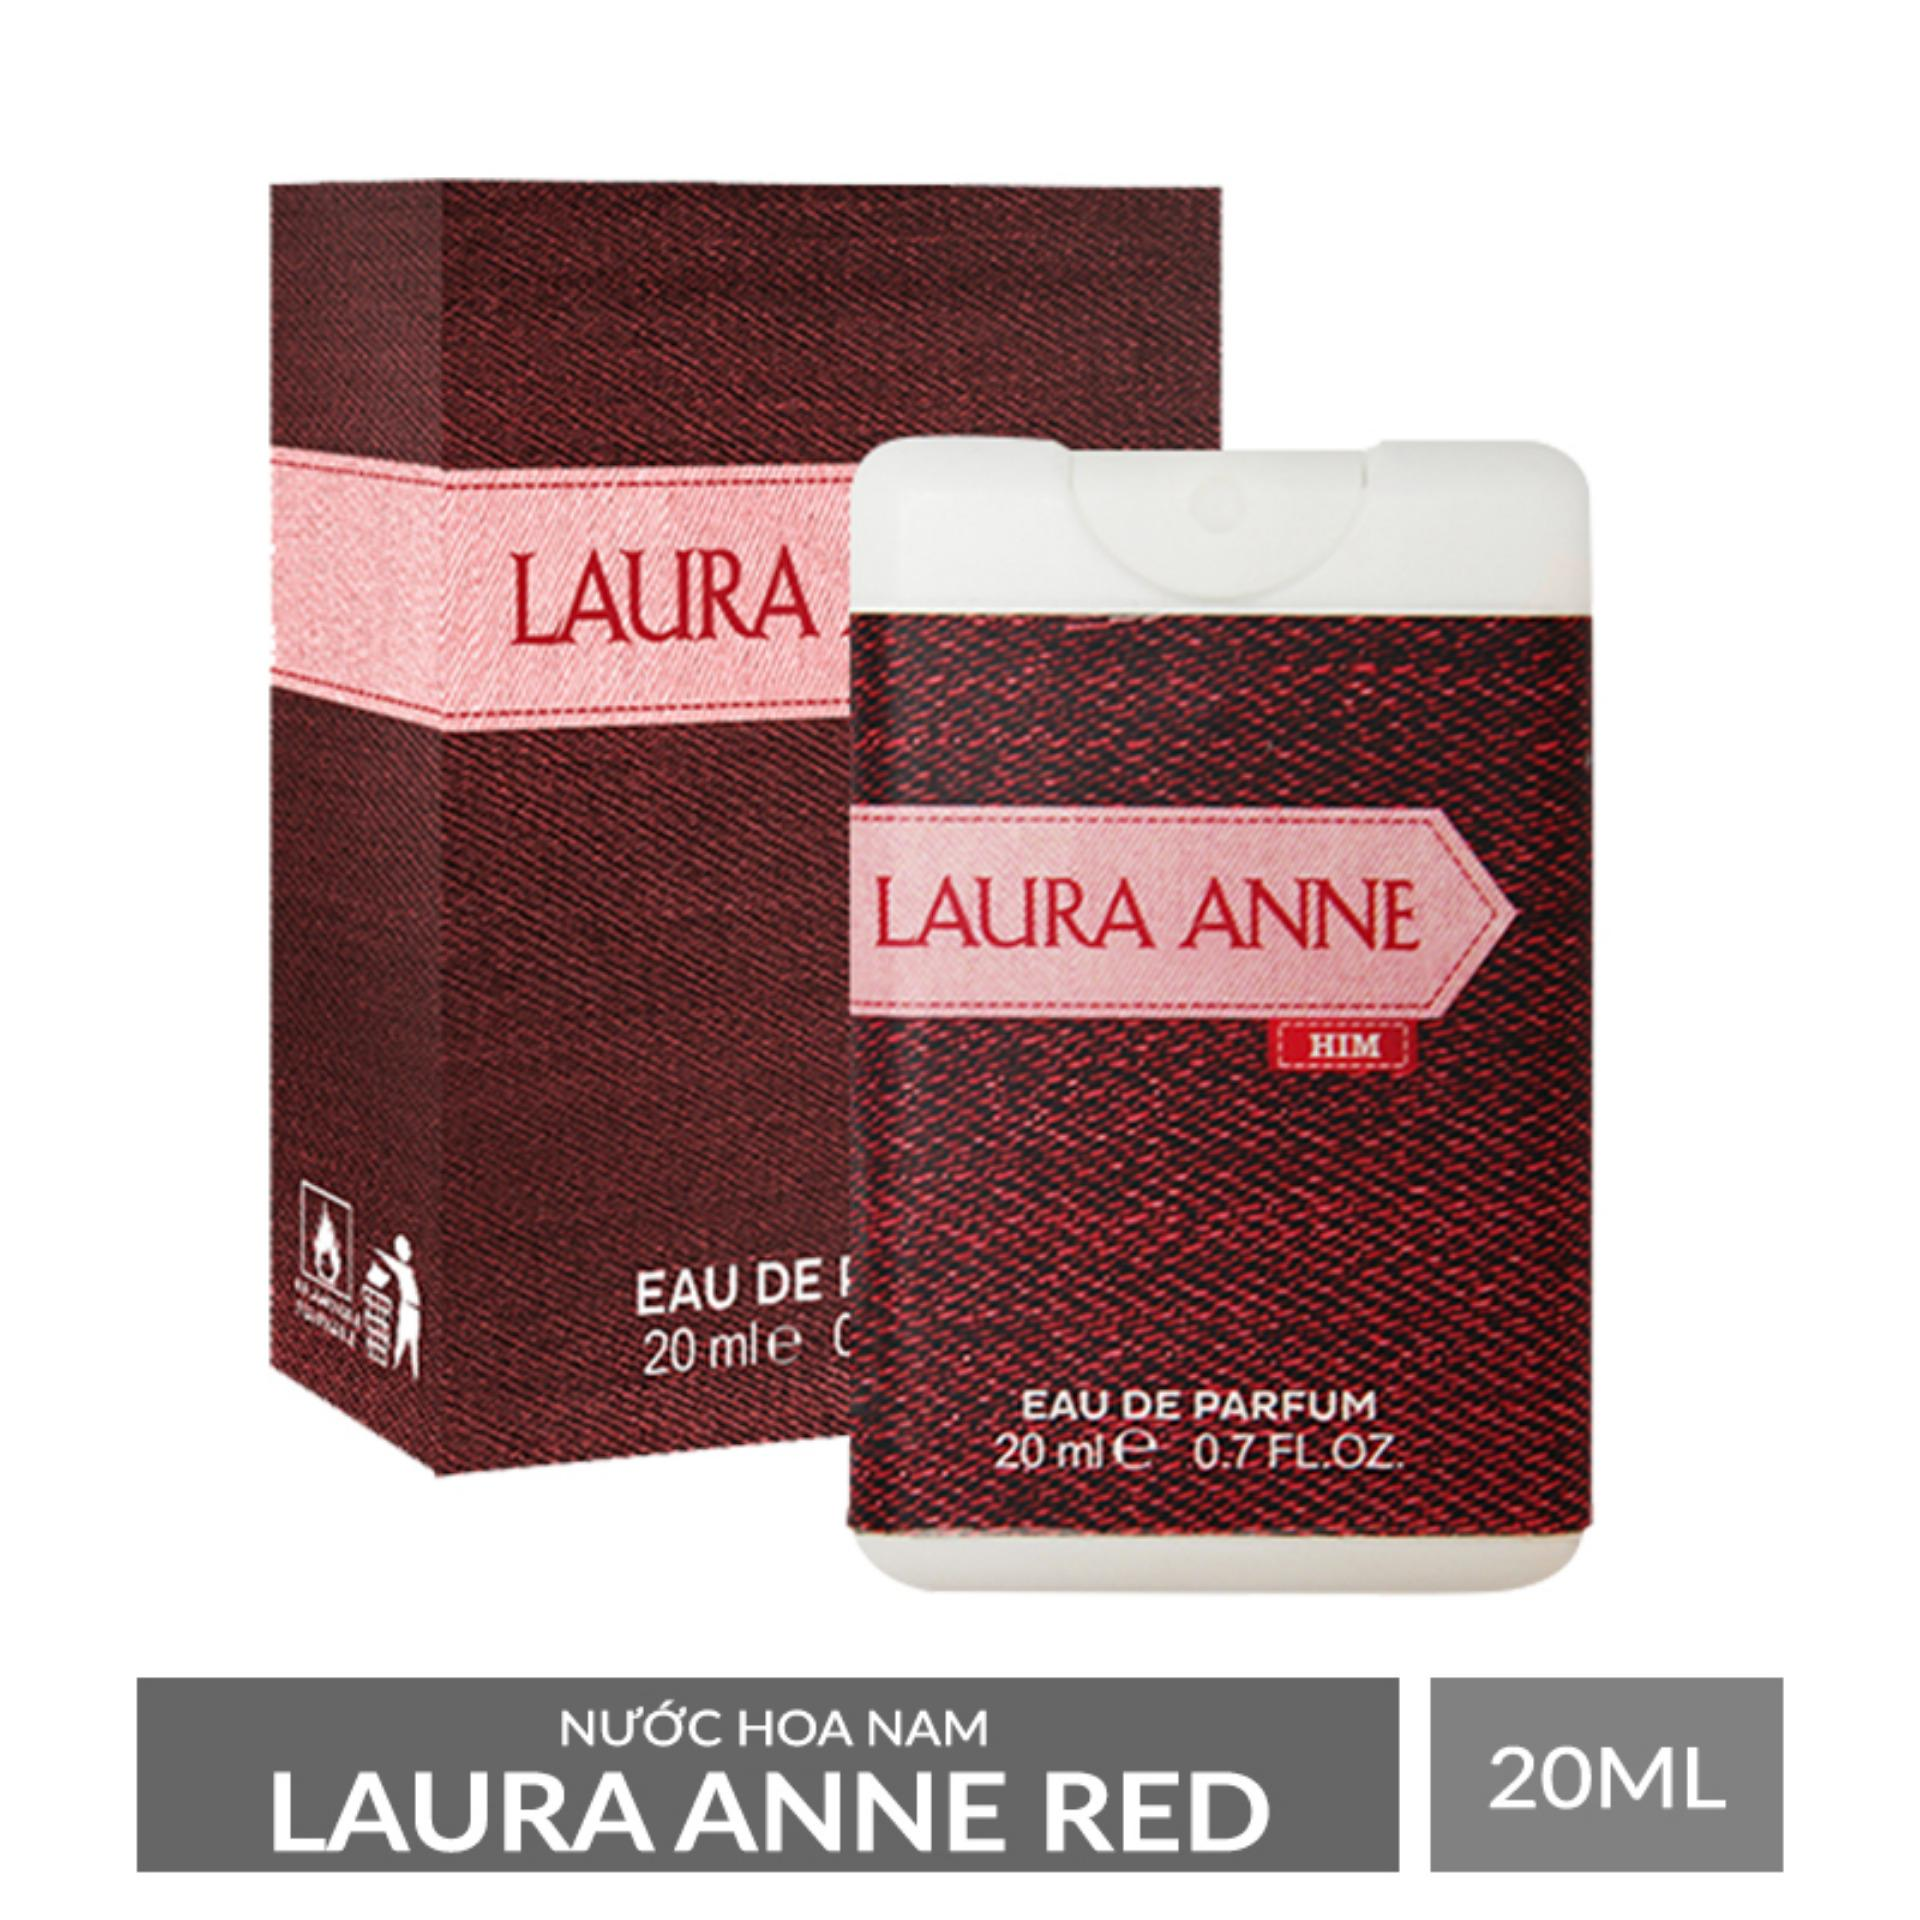 Nước hoa nam Laura Anne Red 20ml